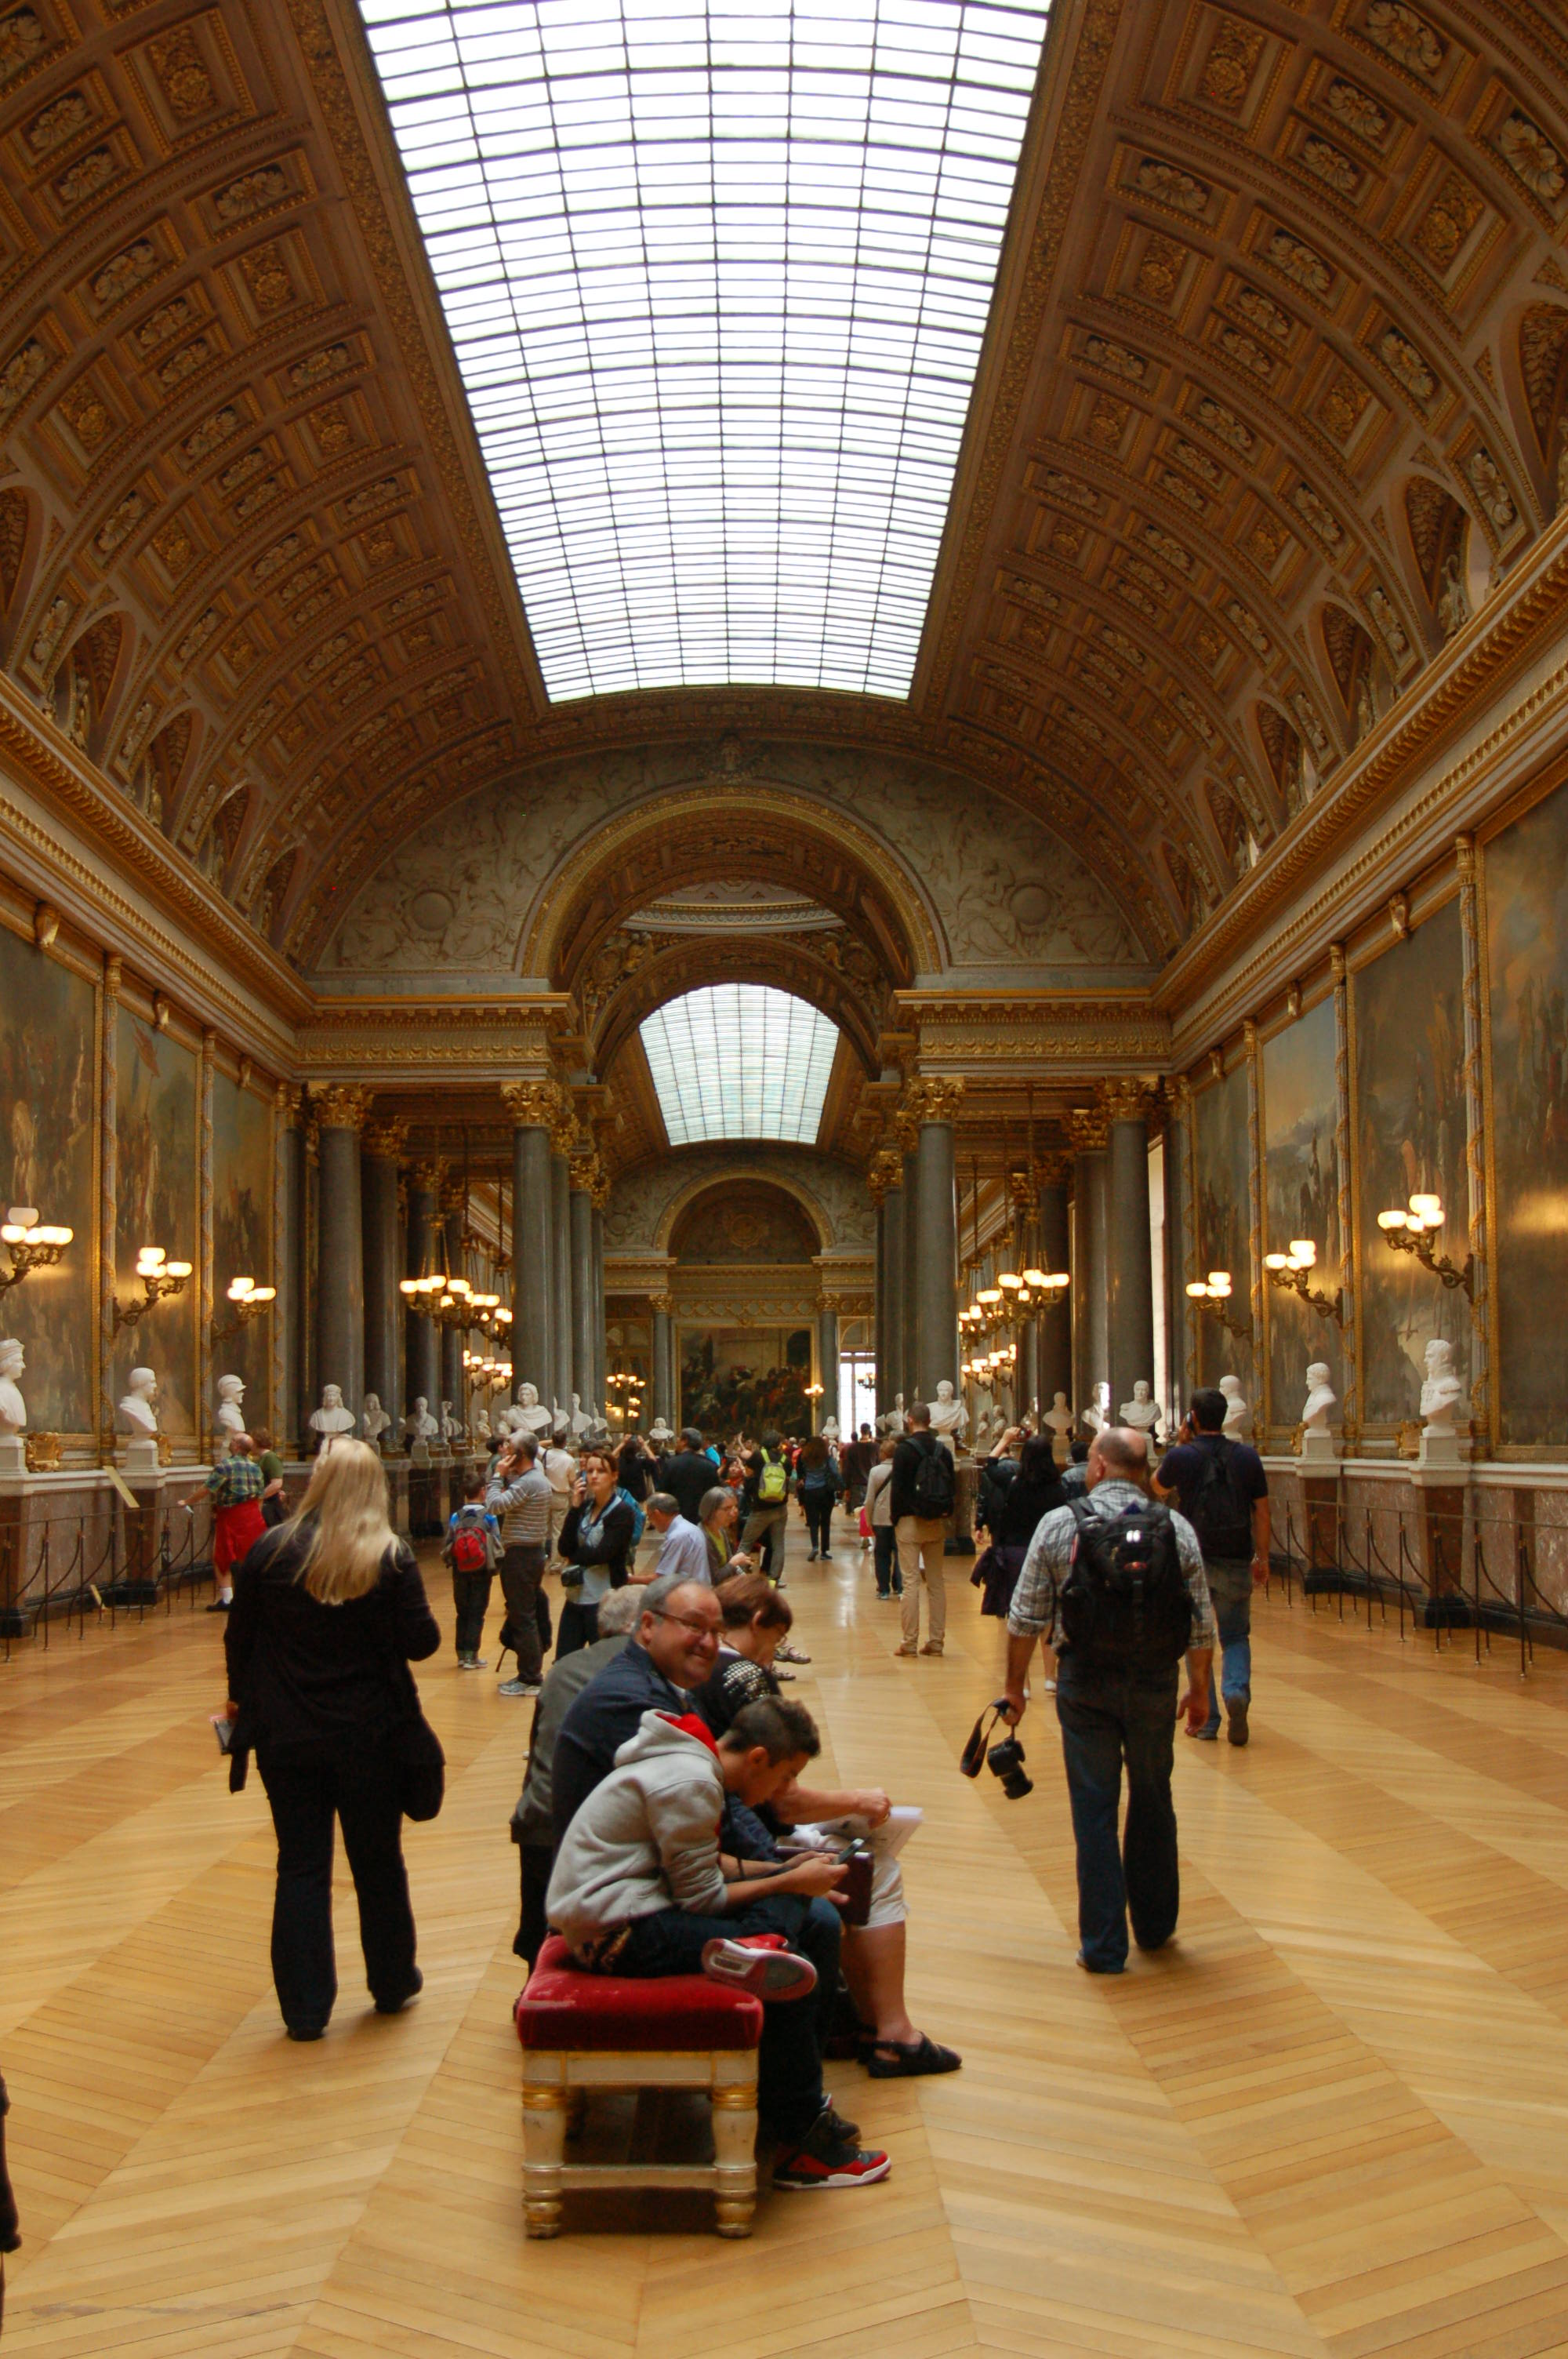 Hall of Paintings, Palace Of Versailles